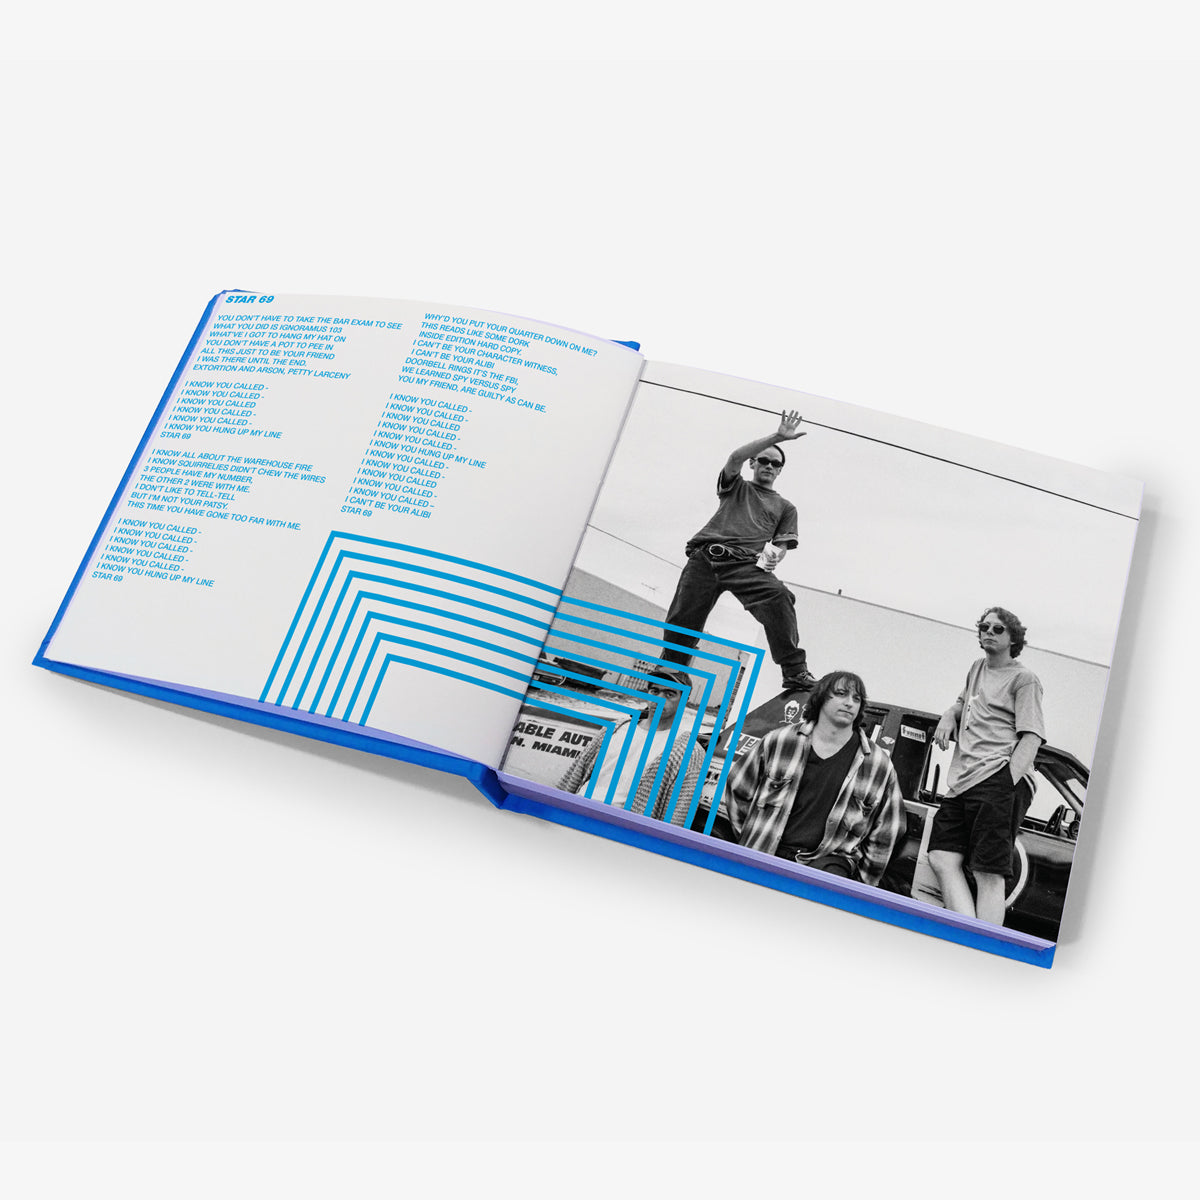 R.E.M. - Monster (25th Anniversary Edition, Deluxe Box Set) on